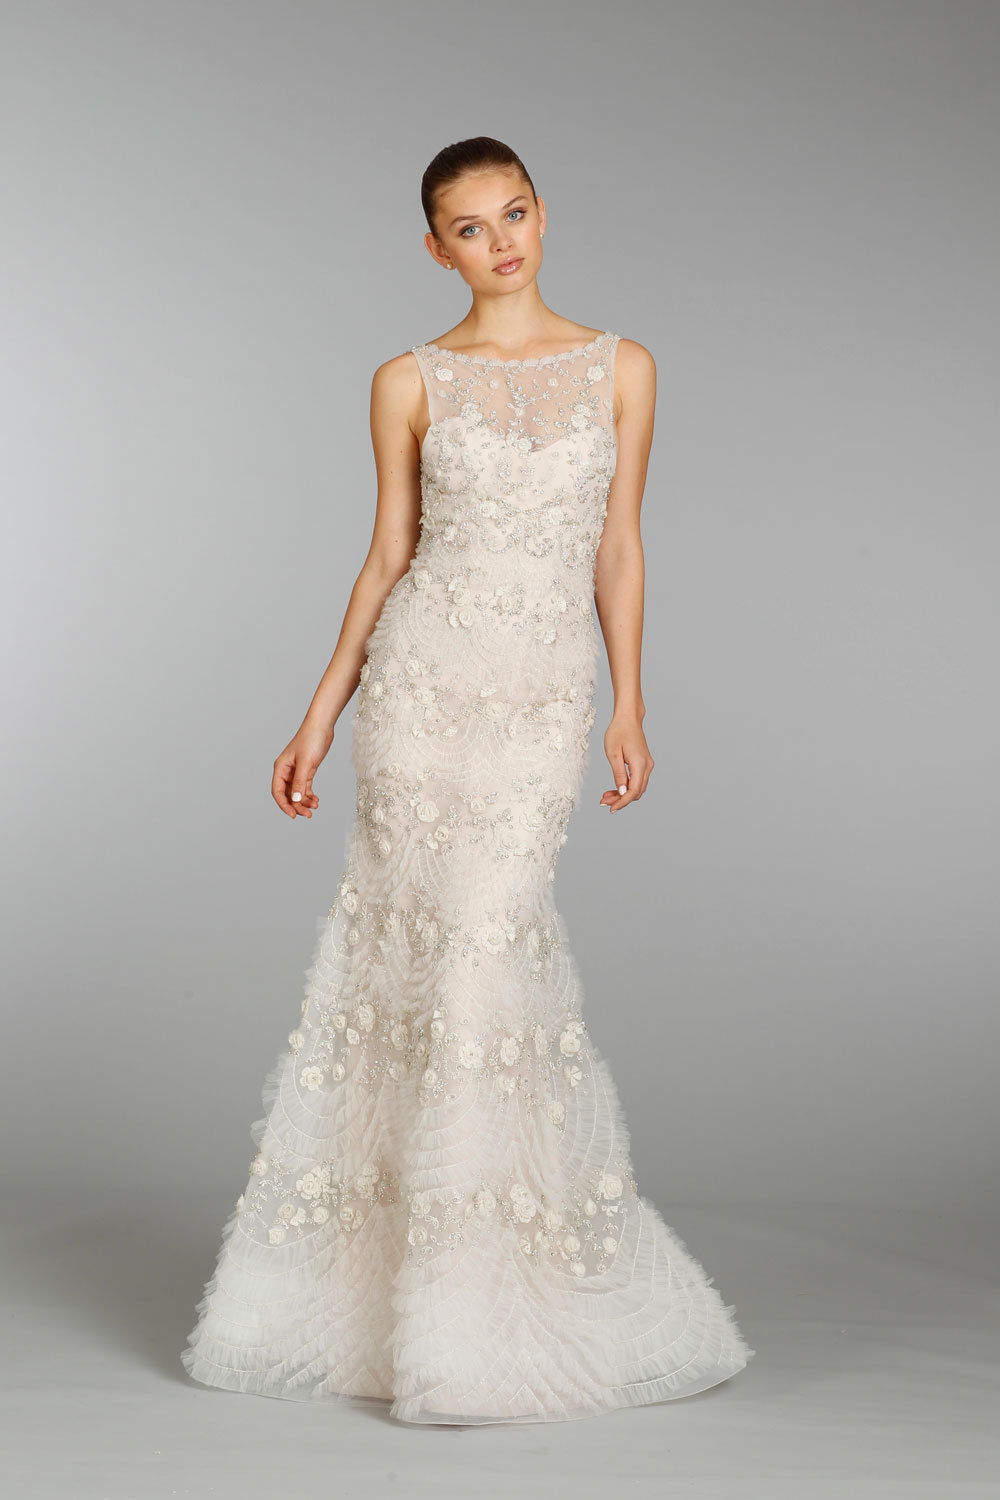 Lazaro wedding dress fall 2013 bridal 3362 for Where to buy lazaro wedding dresses